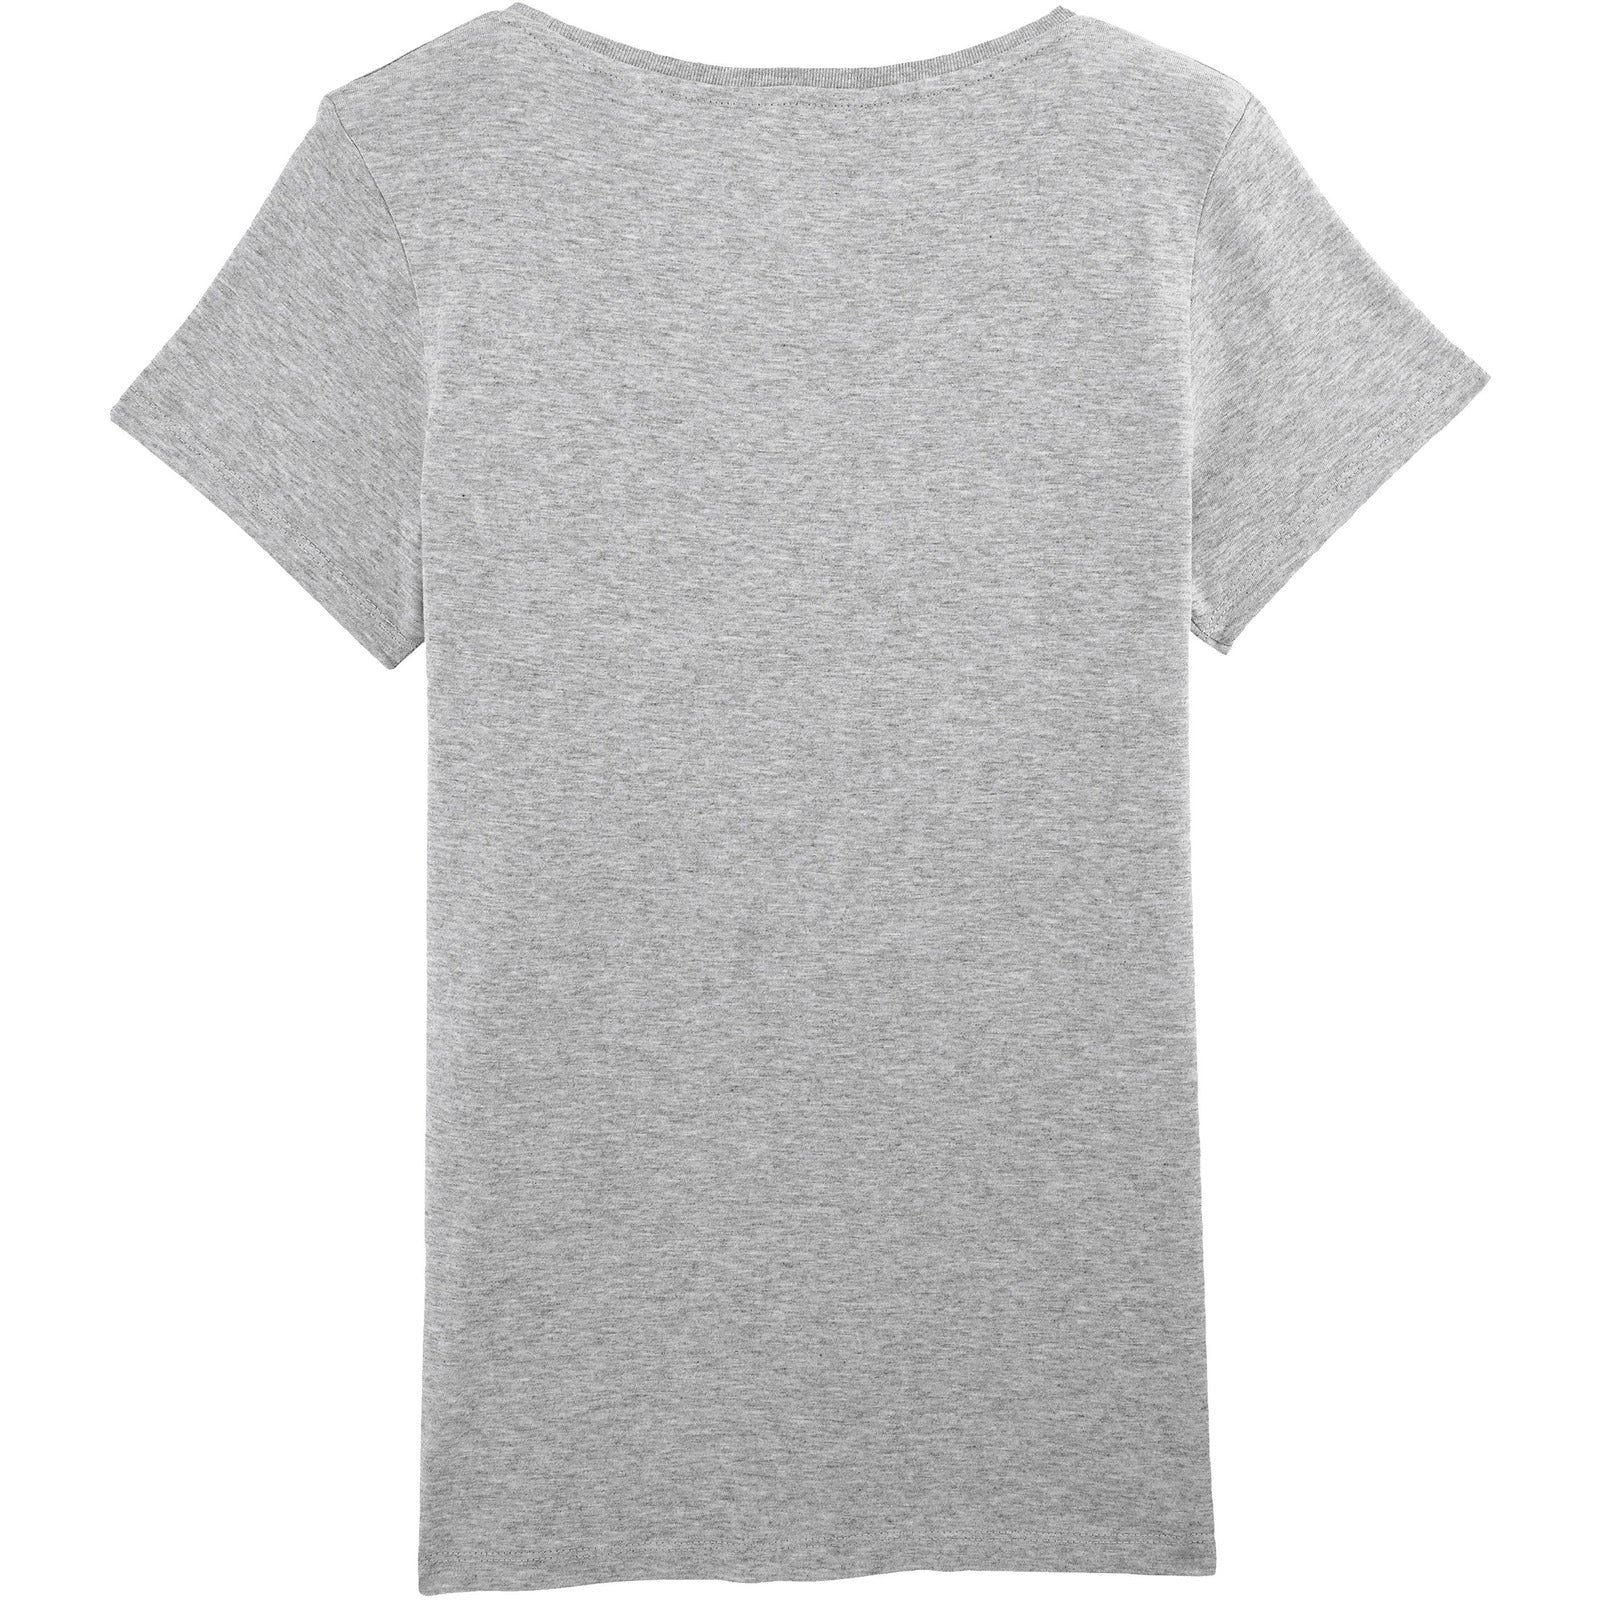 T-Shirt Regular Fit [GRAU]